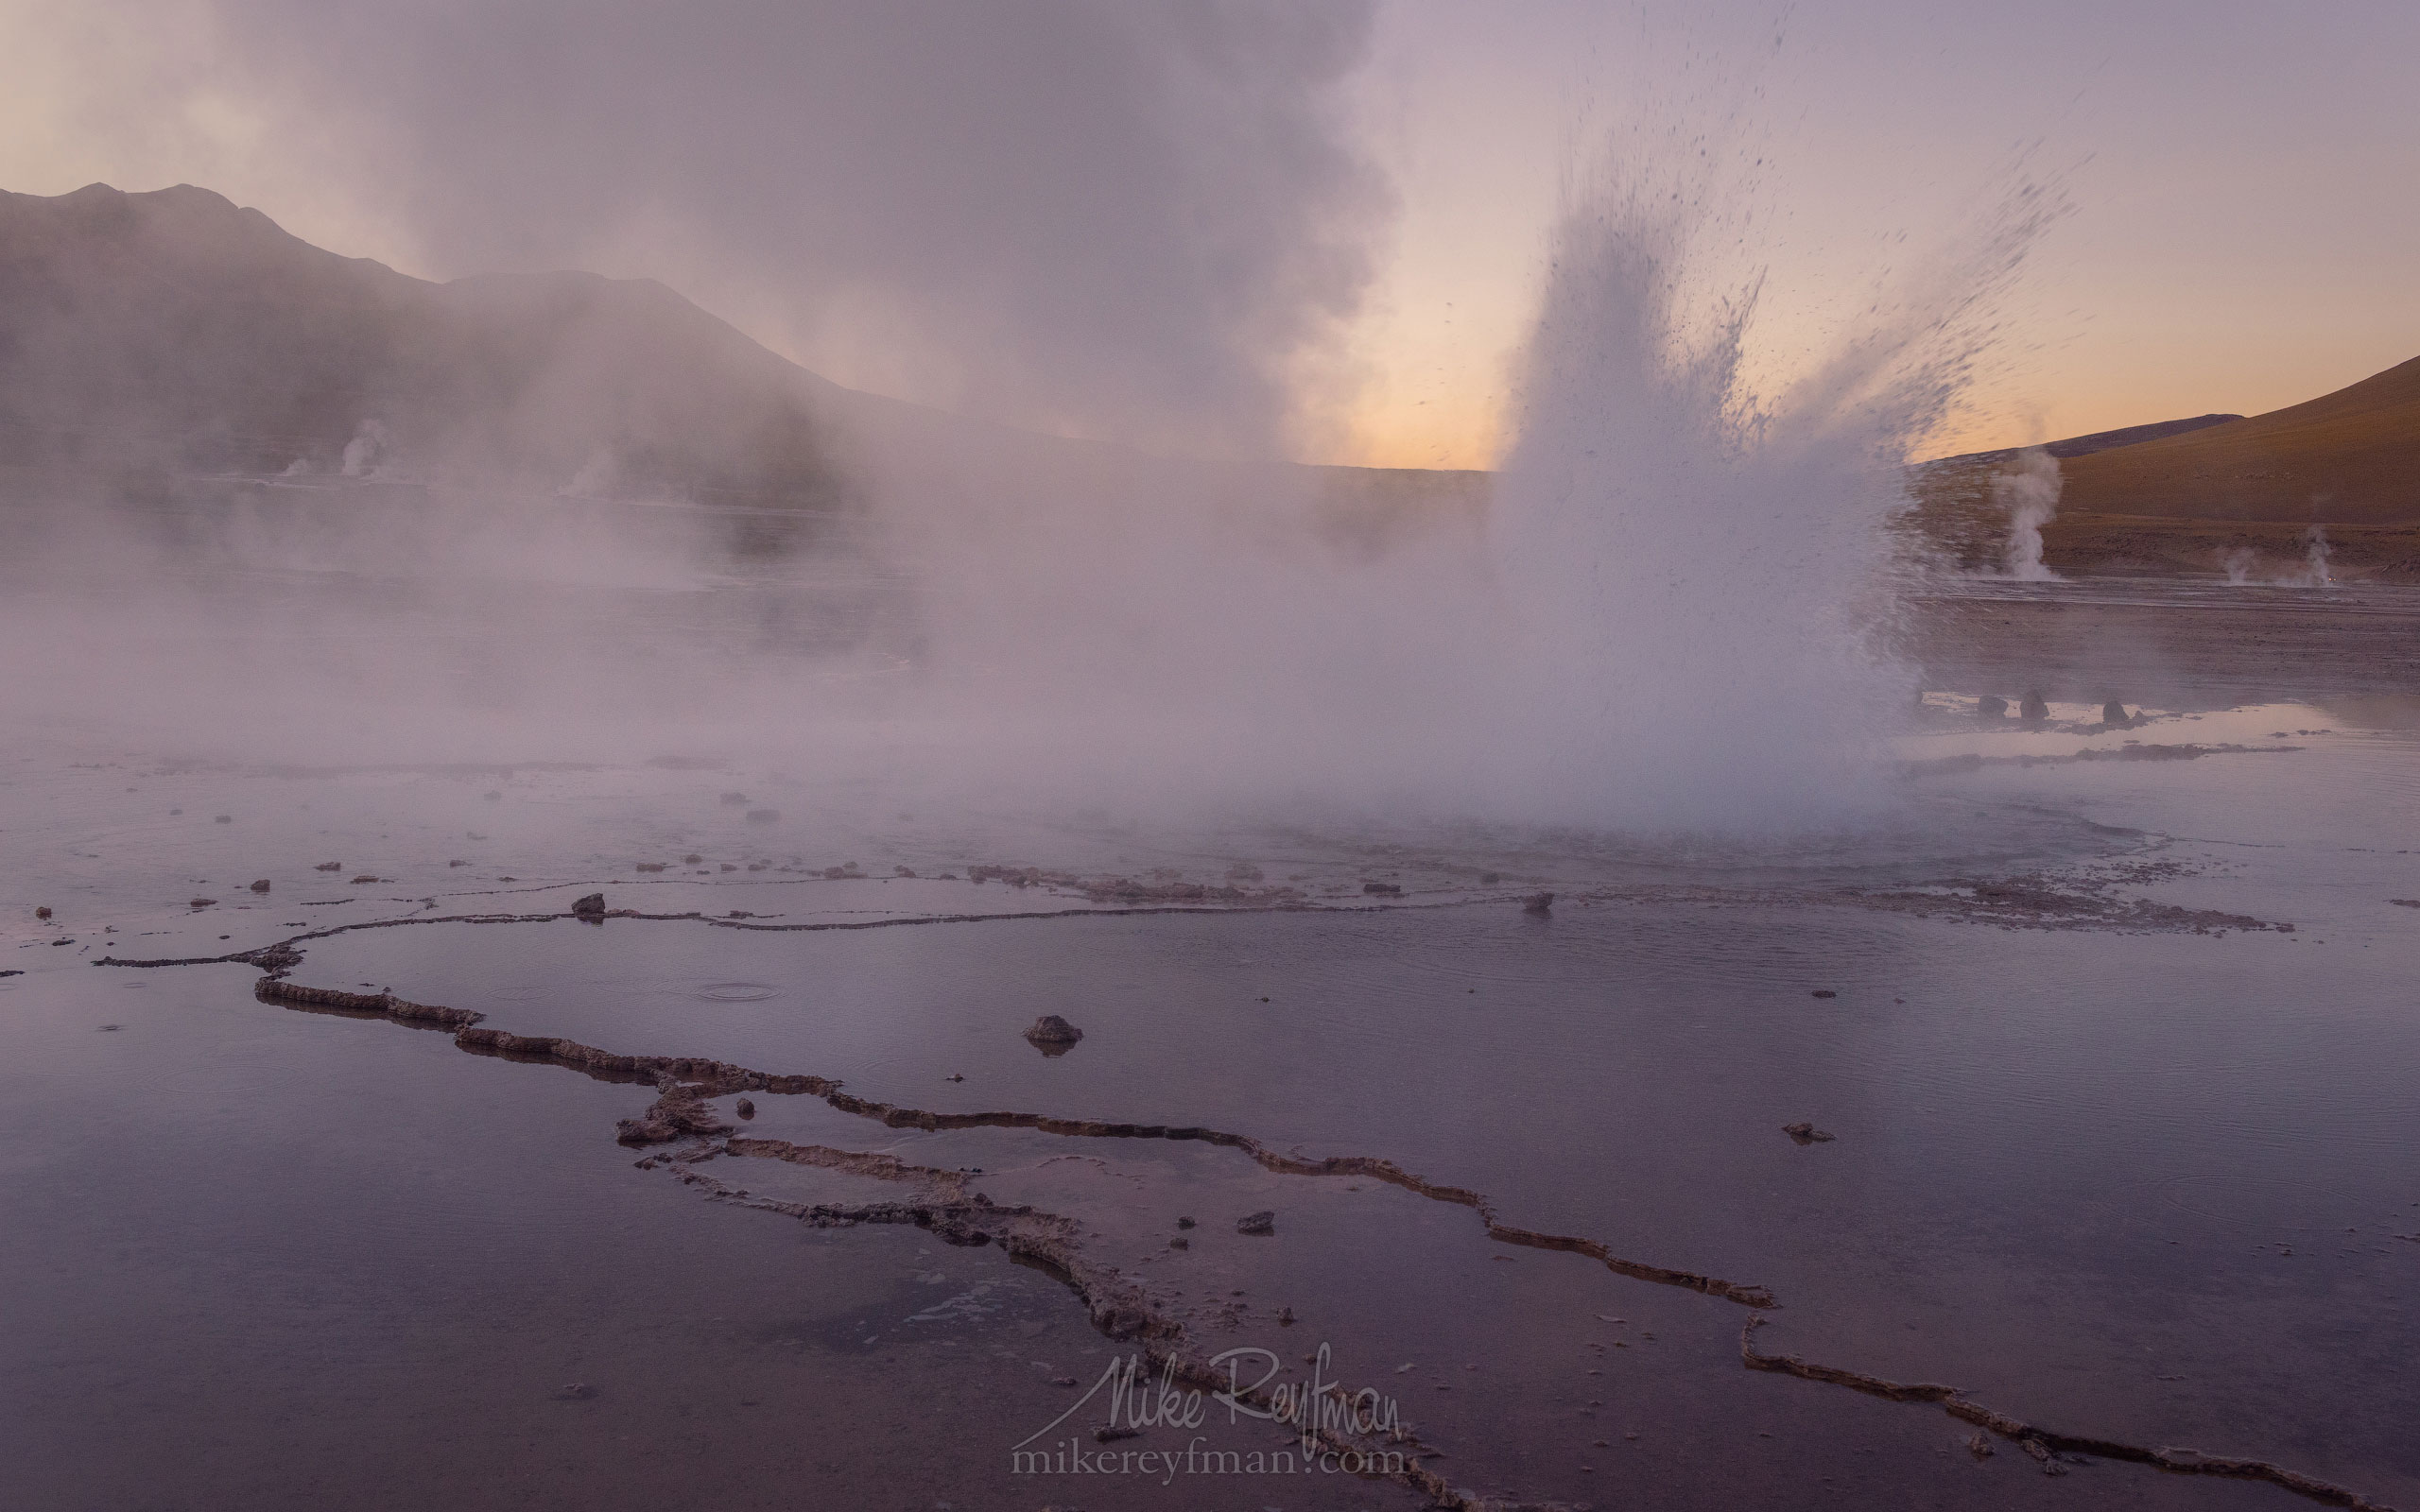 Geyser del Tatio. Atacama's Geothermal Field, Antofagasta Region, Chile AA1-D1D8722 - Atacama and Altiplano. The Driest Desert and The High Plain - Mike Reyfman Photography